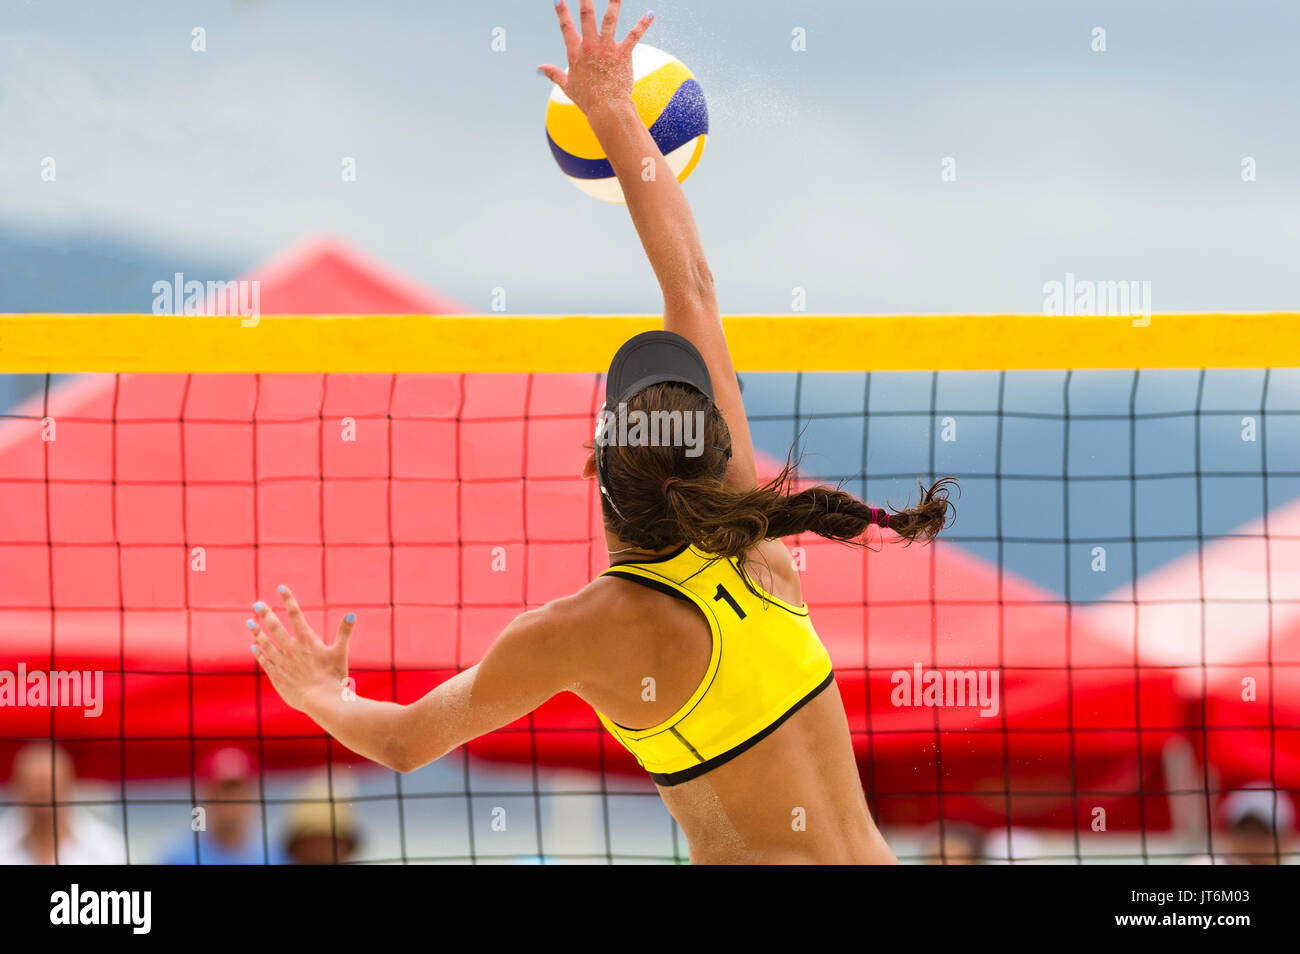 Volleyball player is a female beach volleyball player jumping at the net to spike the ball down. - Stock Image